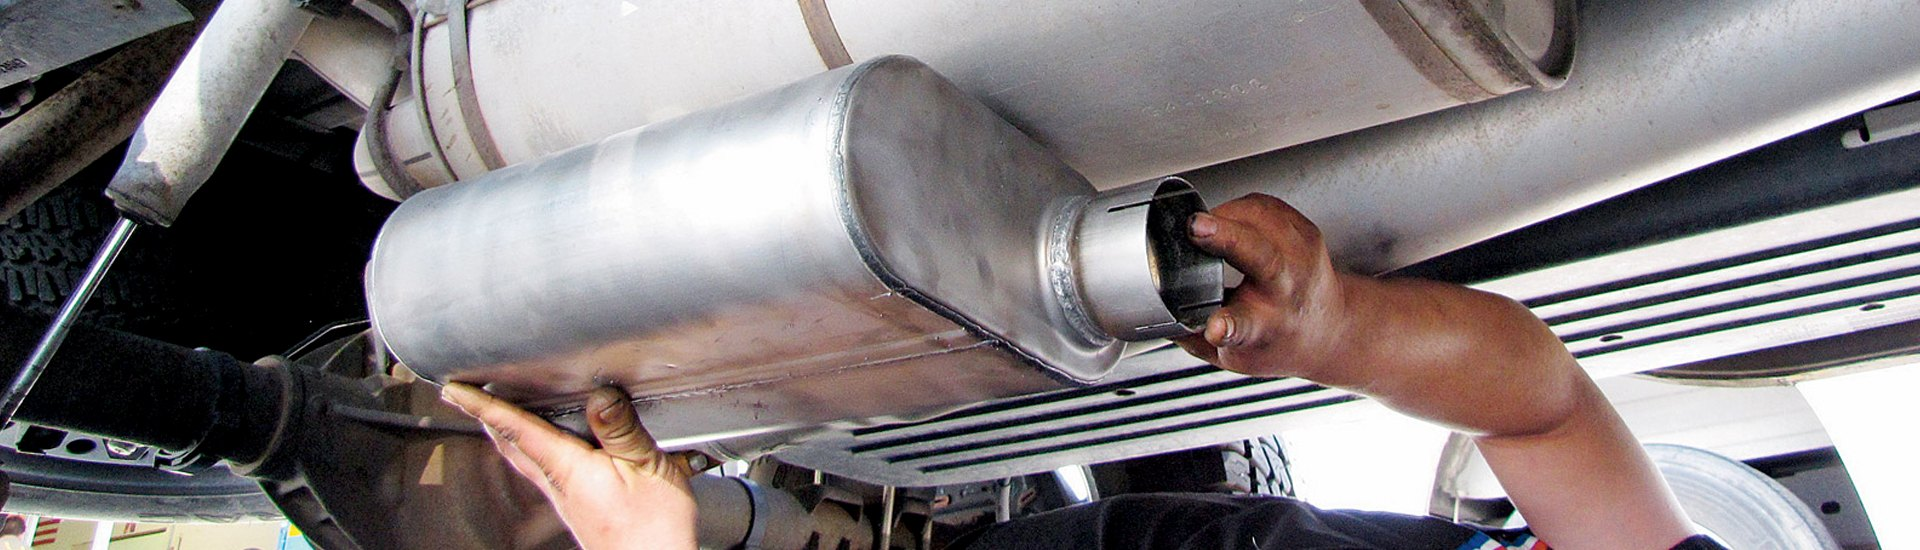 replacement exhaust parts mufflers